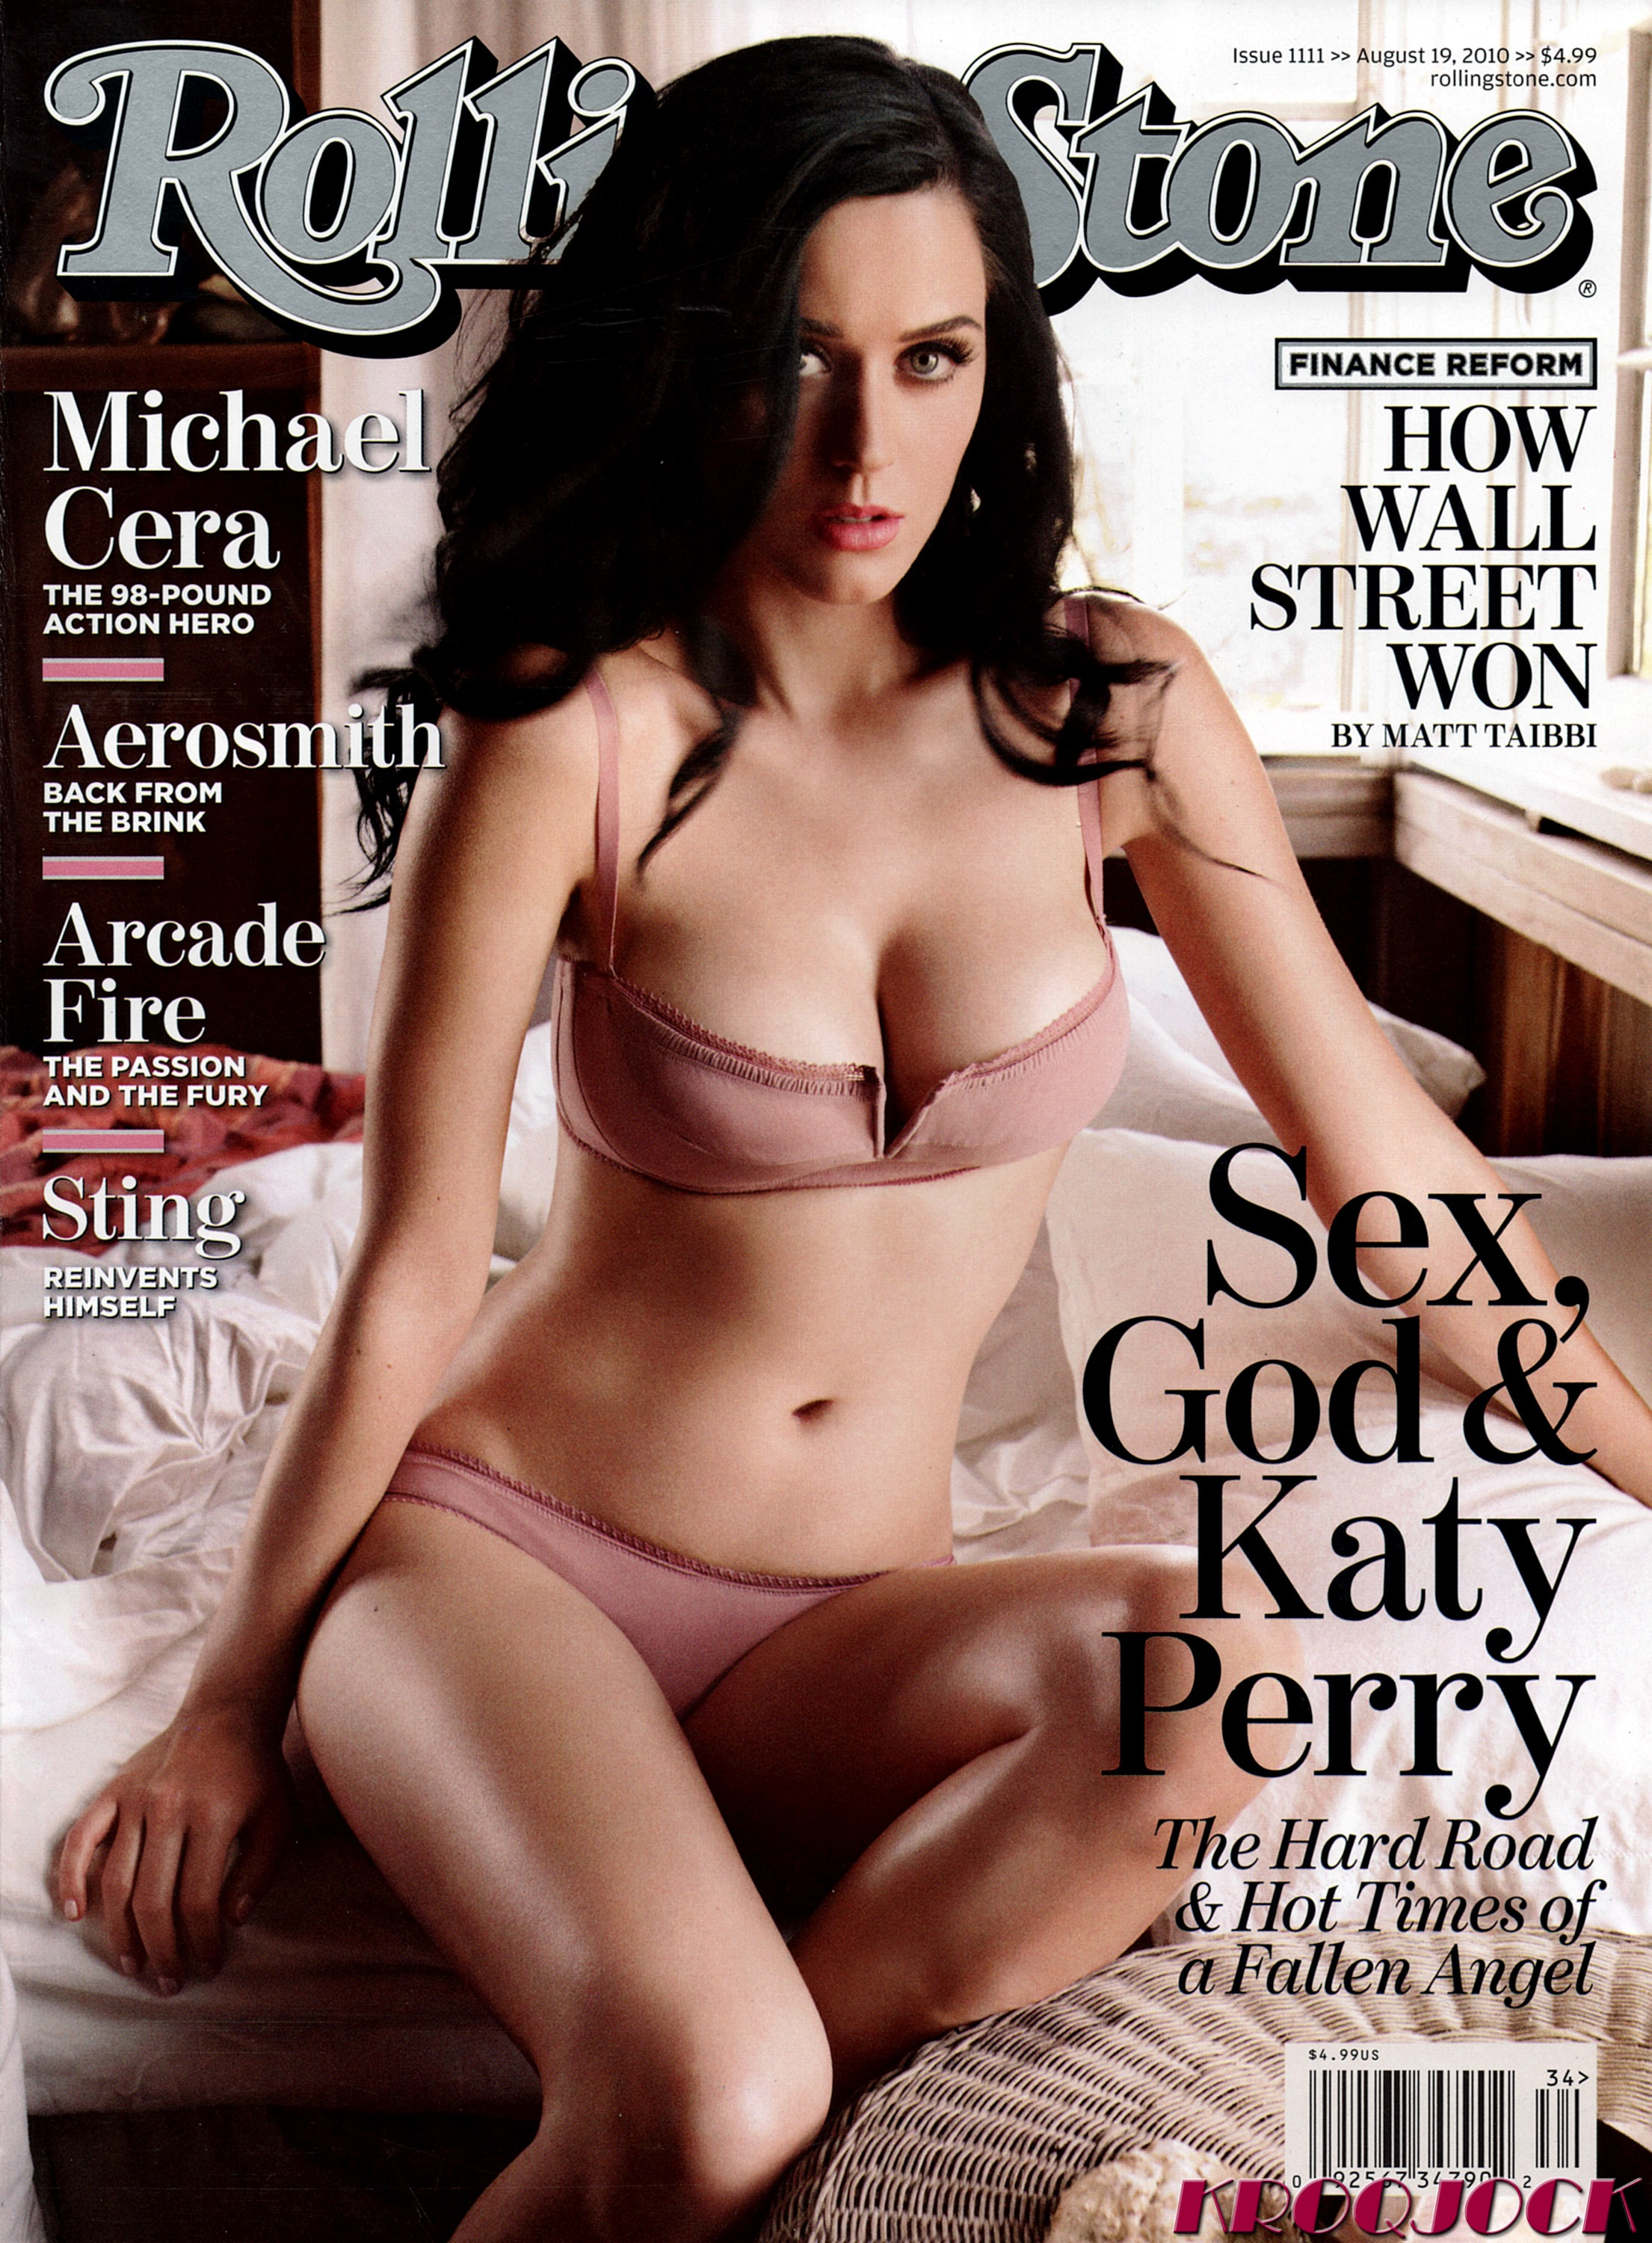 07030_Celebutopia_NET.Katy_Perry.ROLLING_STONE.Issue_1111.HQ.1_122_21lo.jpg